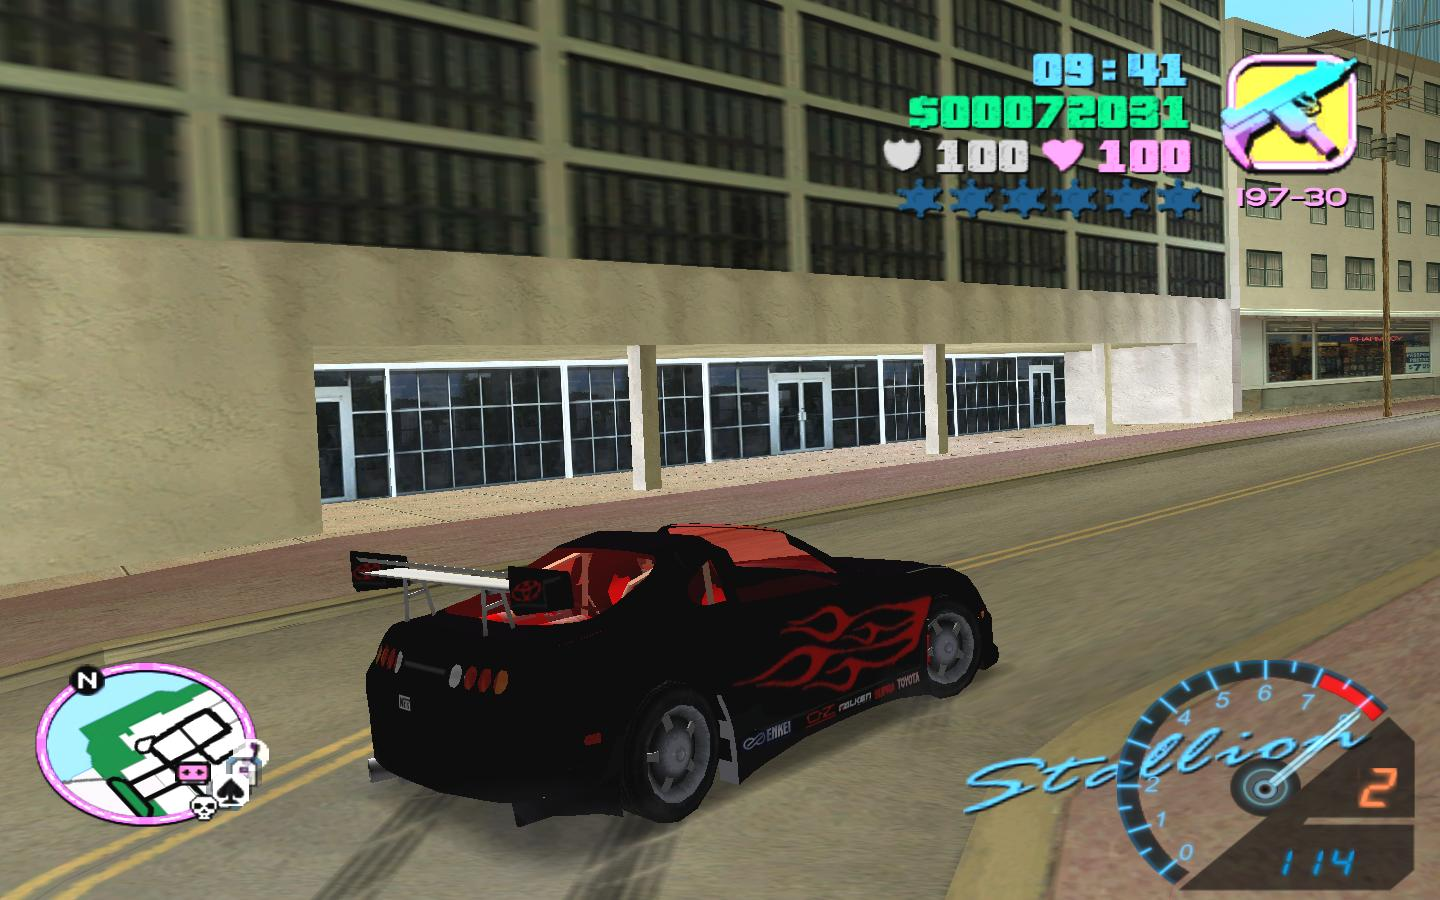 Best Place To Get Nice Cars In Gta